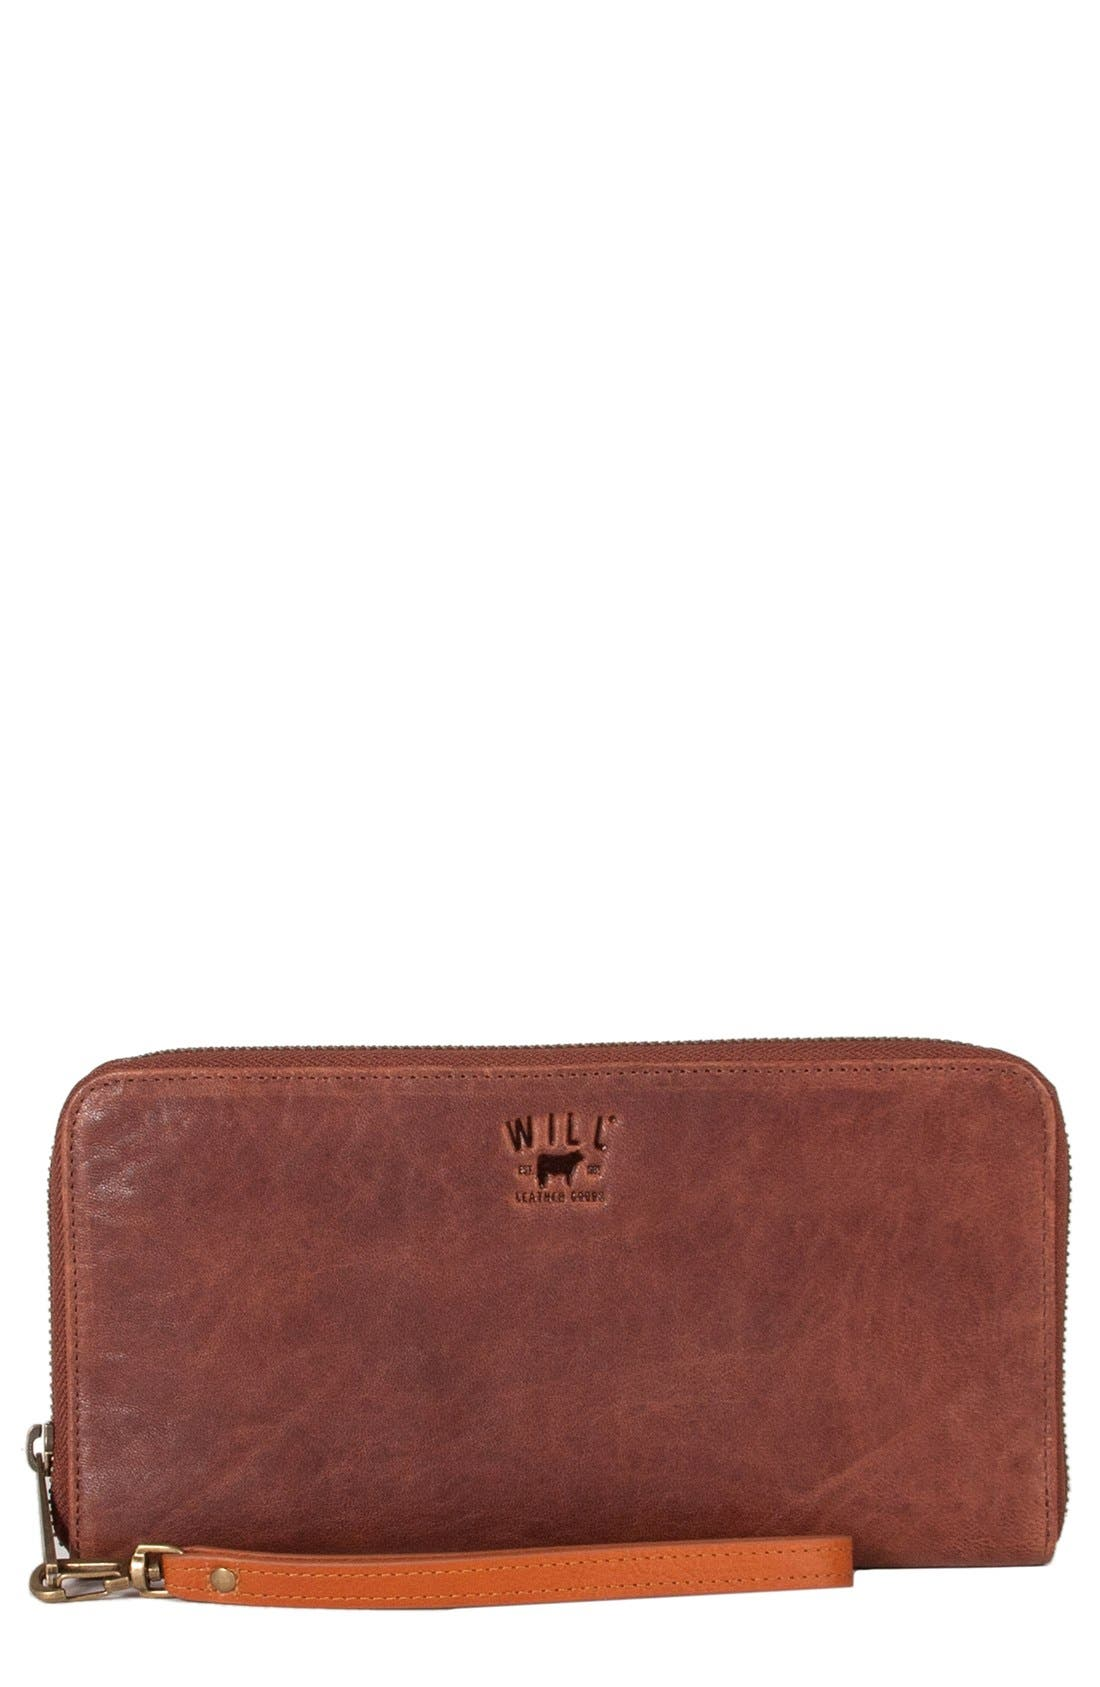 Main Image - Will Leather Goods 'Imogen' Washed Italian Lambskin Leather Checkbook Clutch